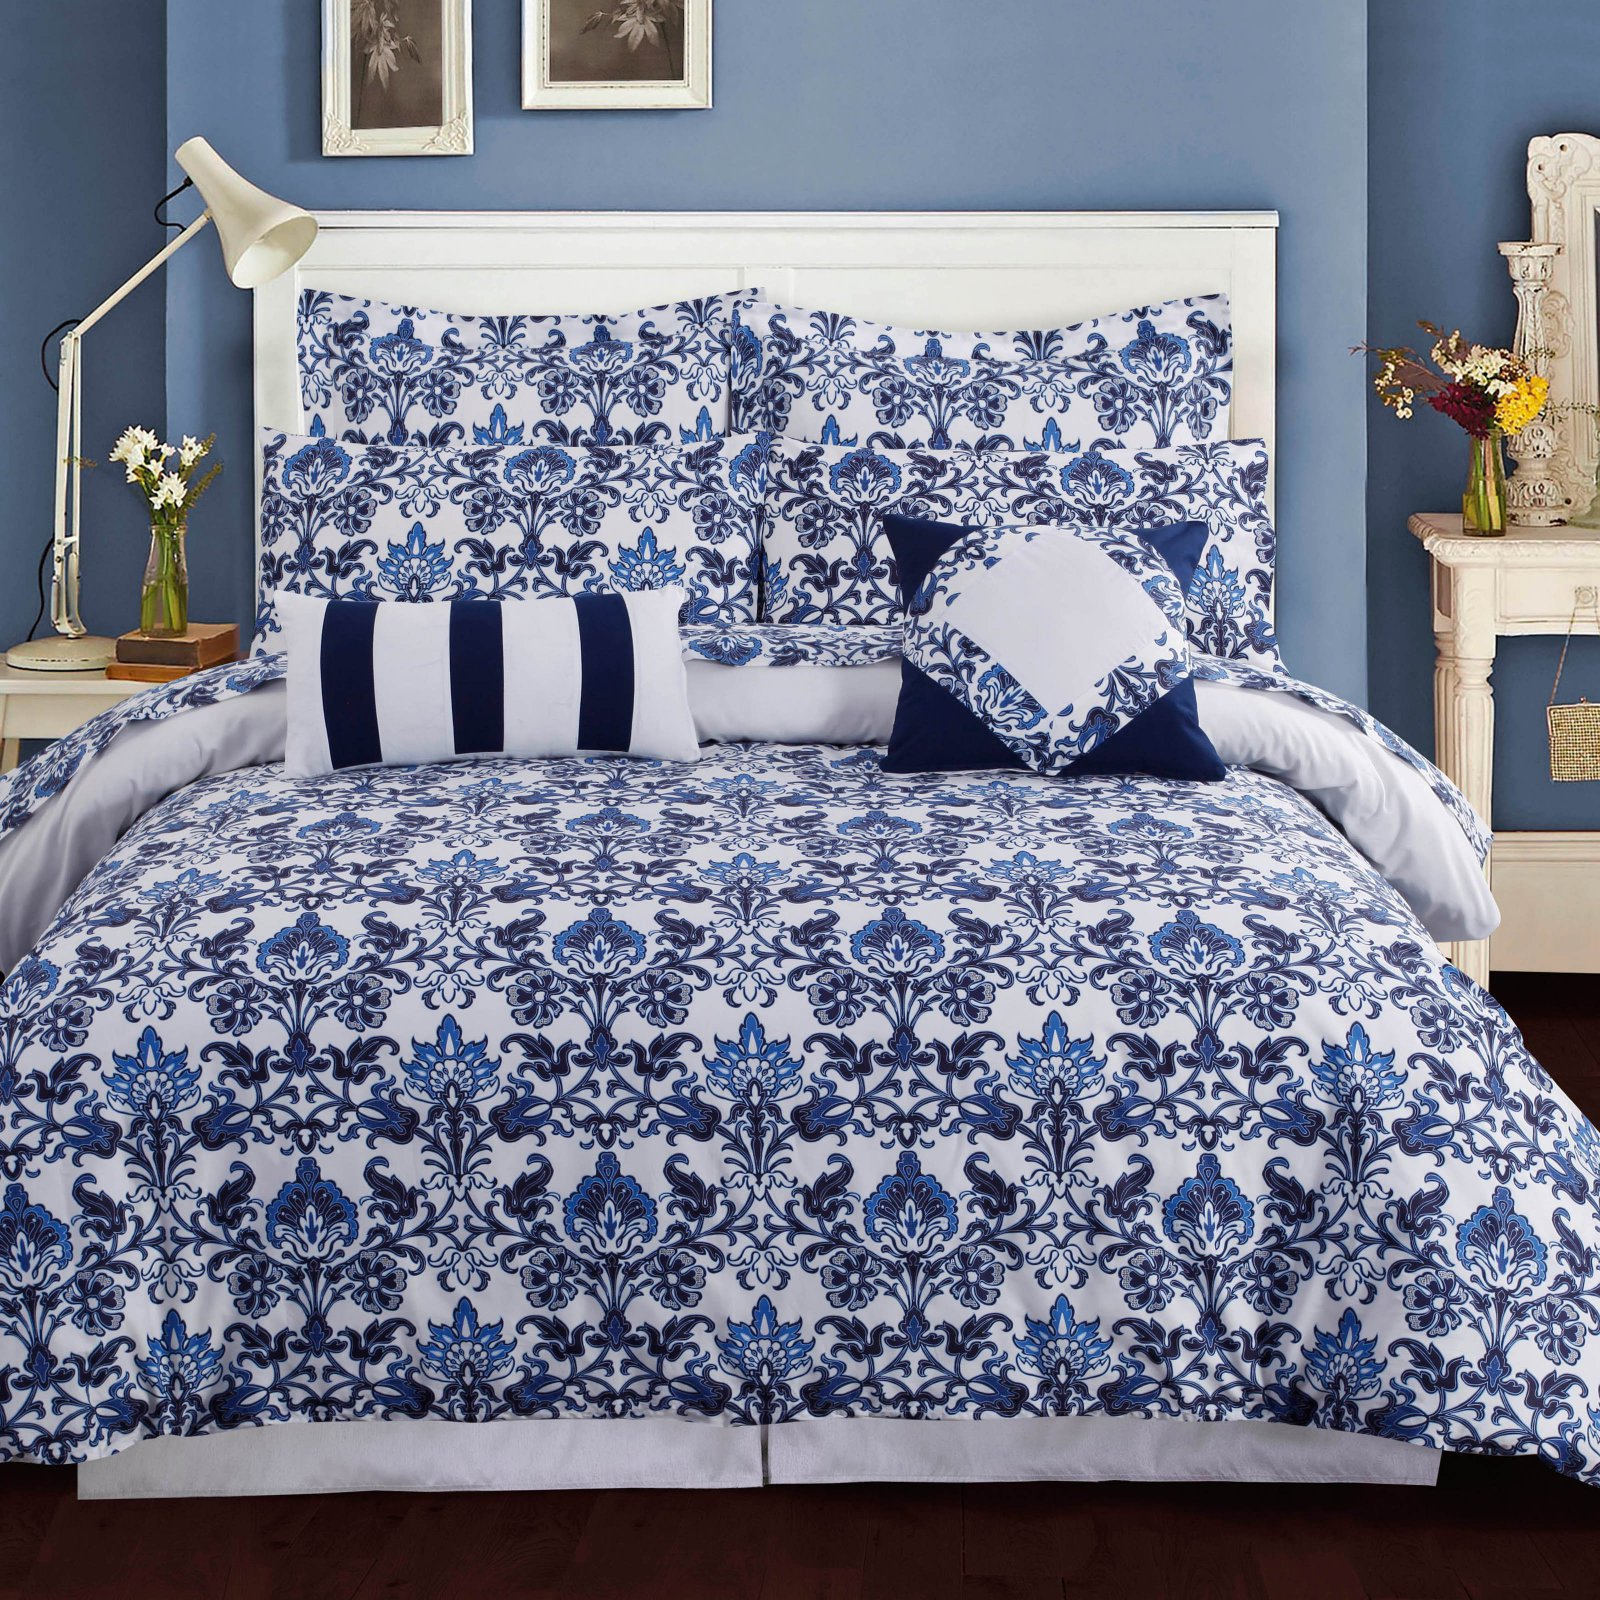 Tribeca Living Catalina 300TC Egyptian Cotton Percale 5-Piece Printed Duvet Set